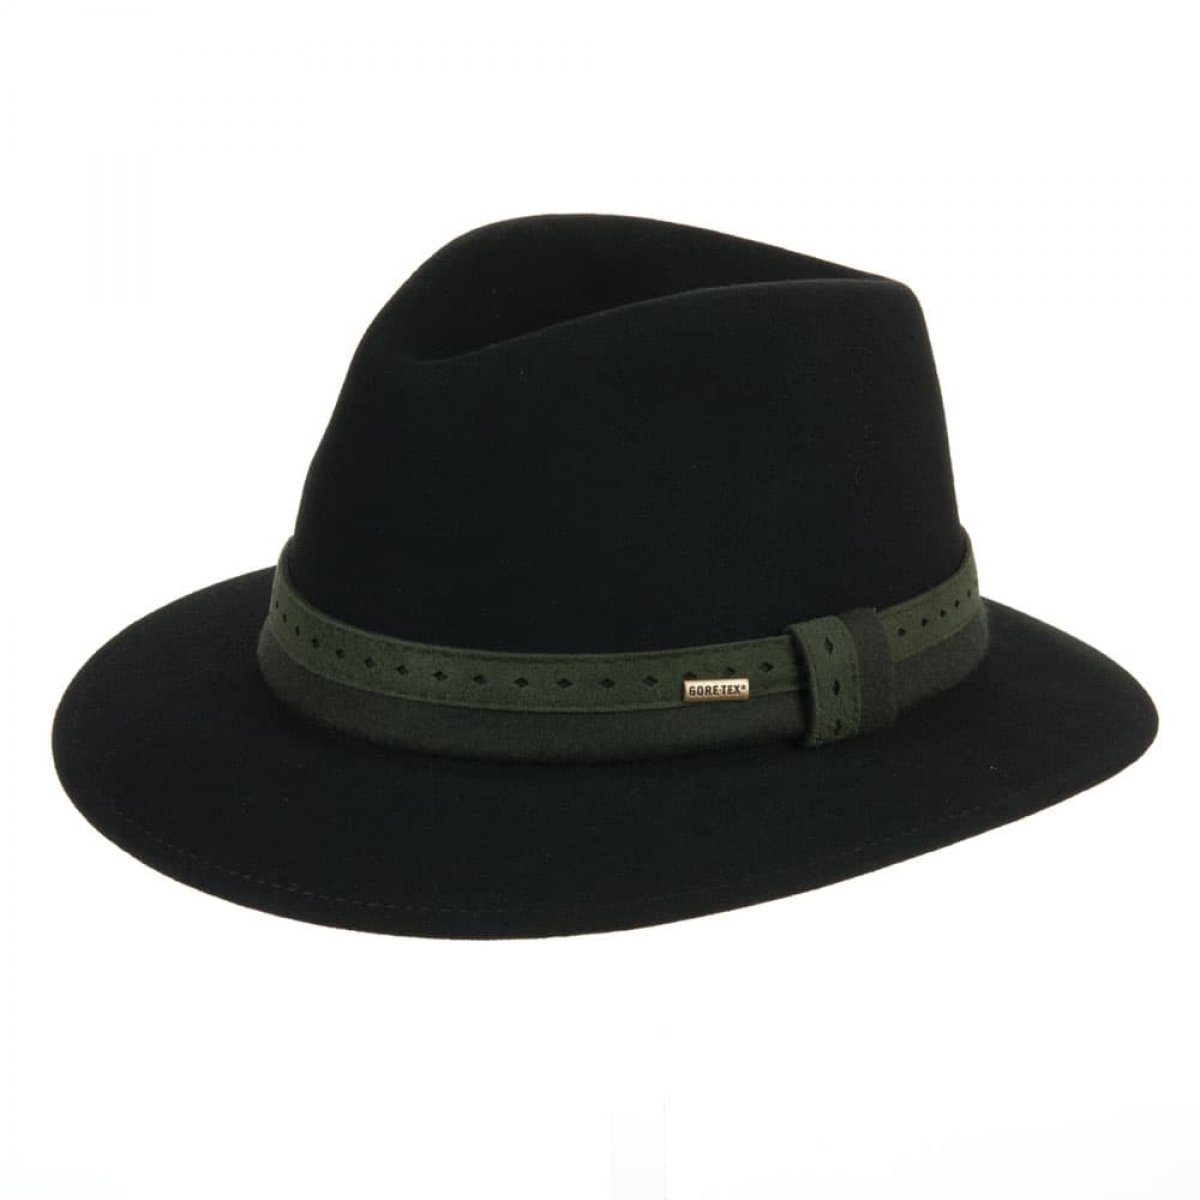 1fe08123f Gore-Tex and felt hat with earflaps integrated